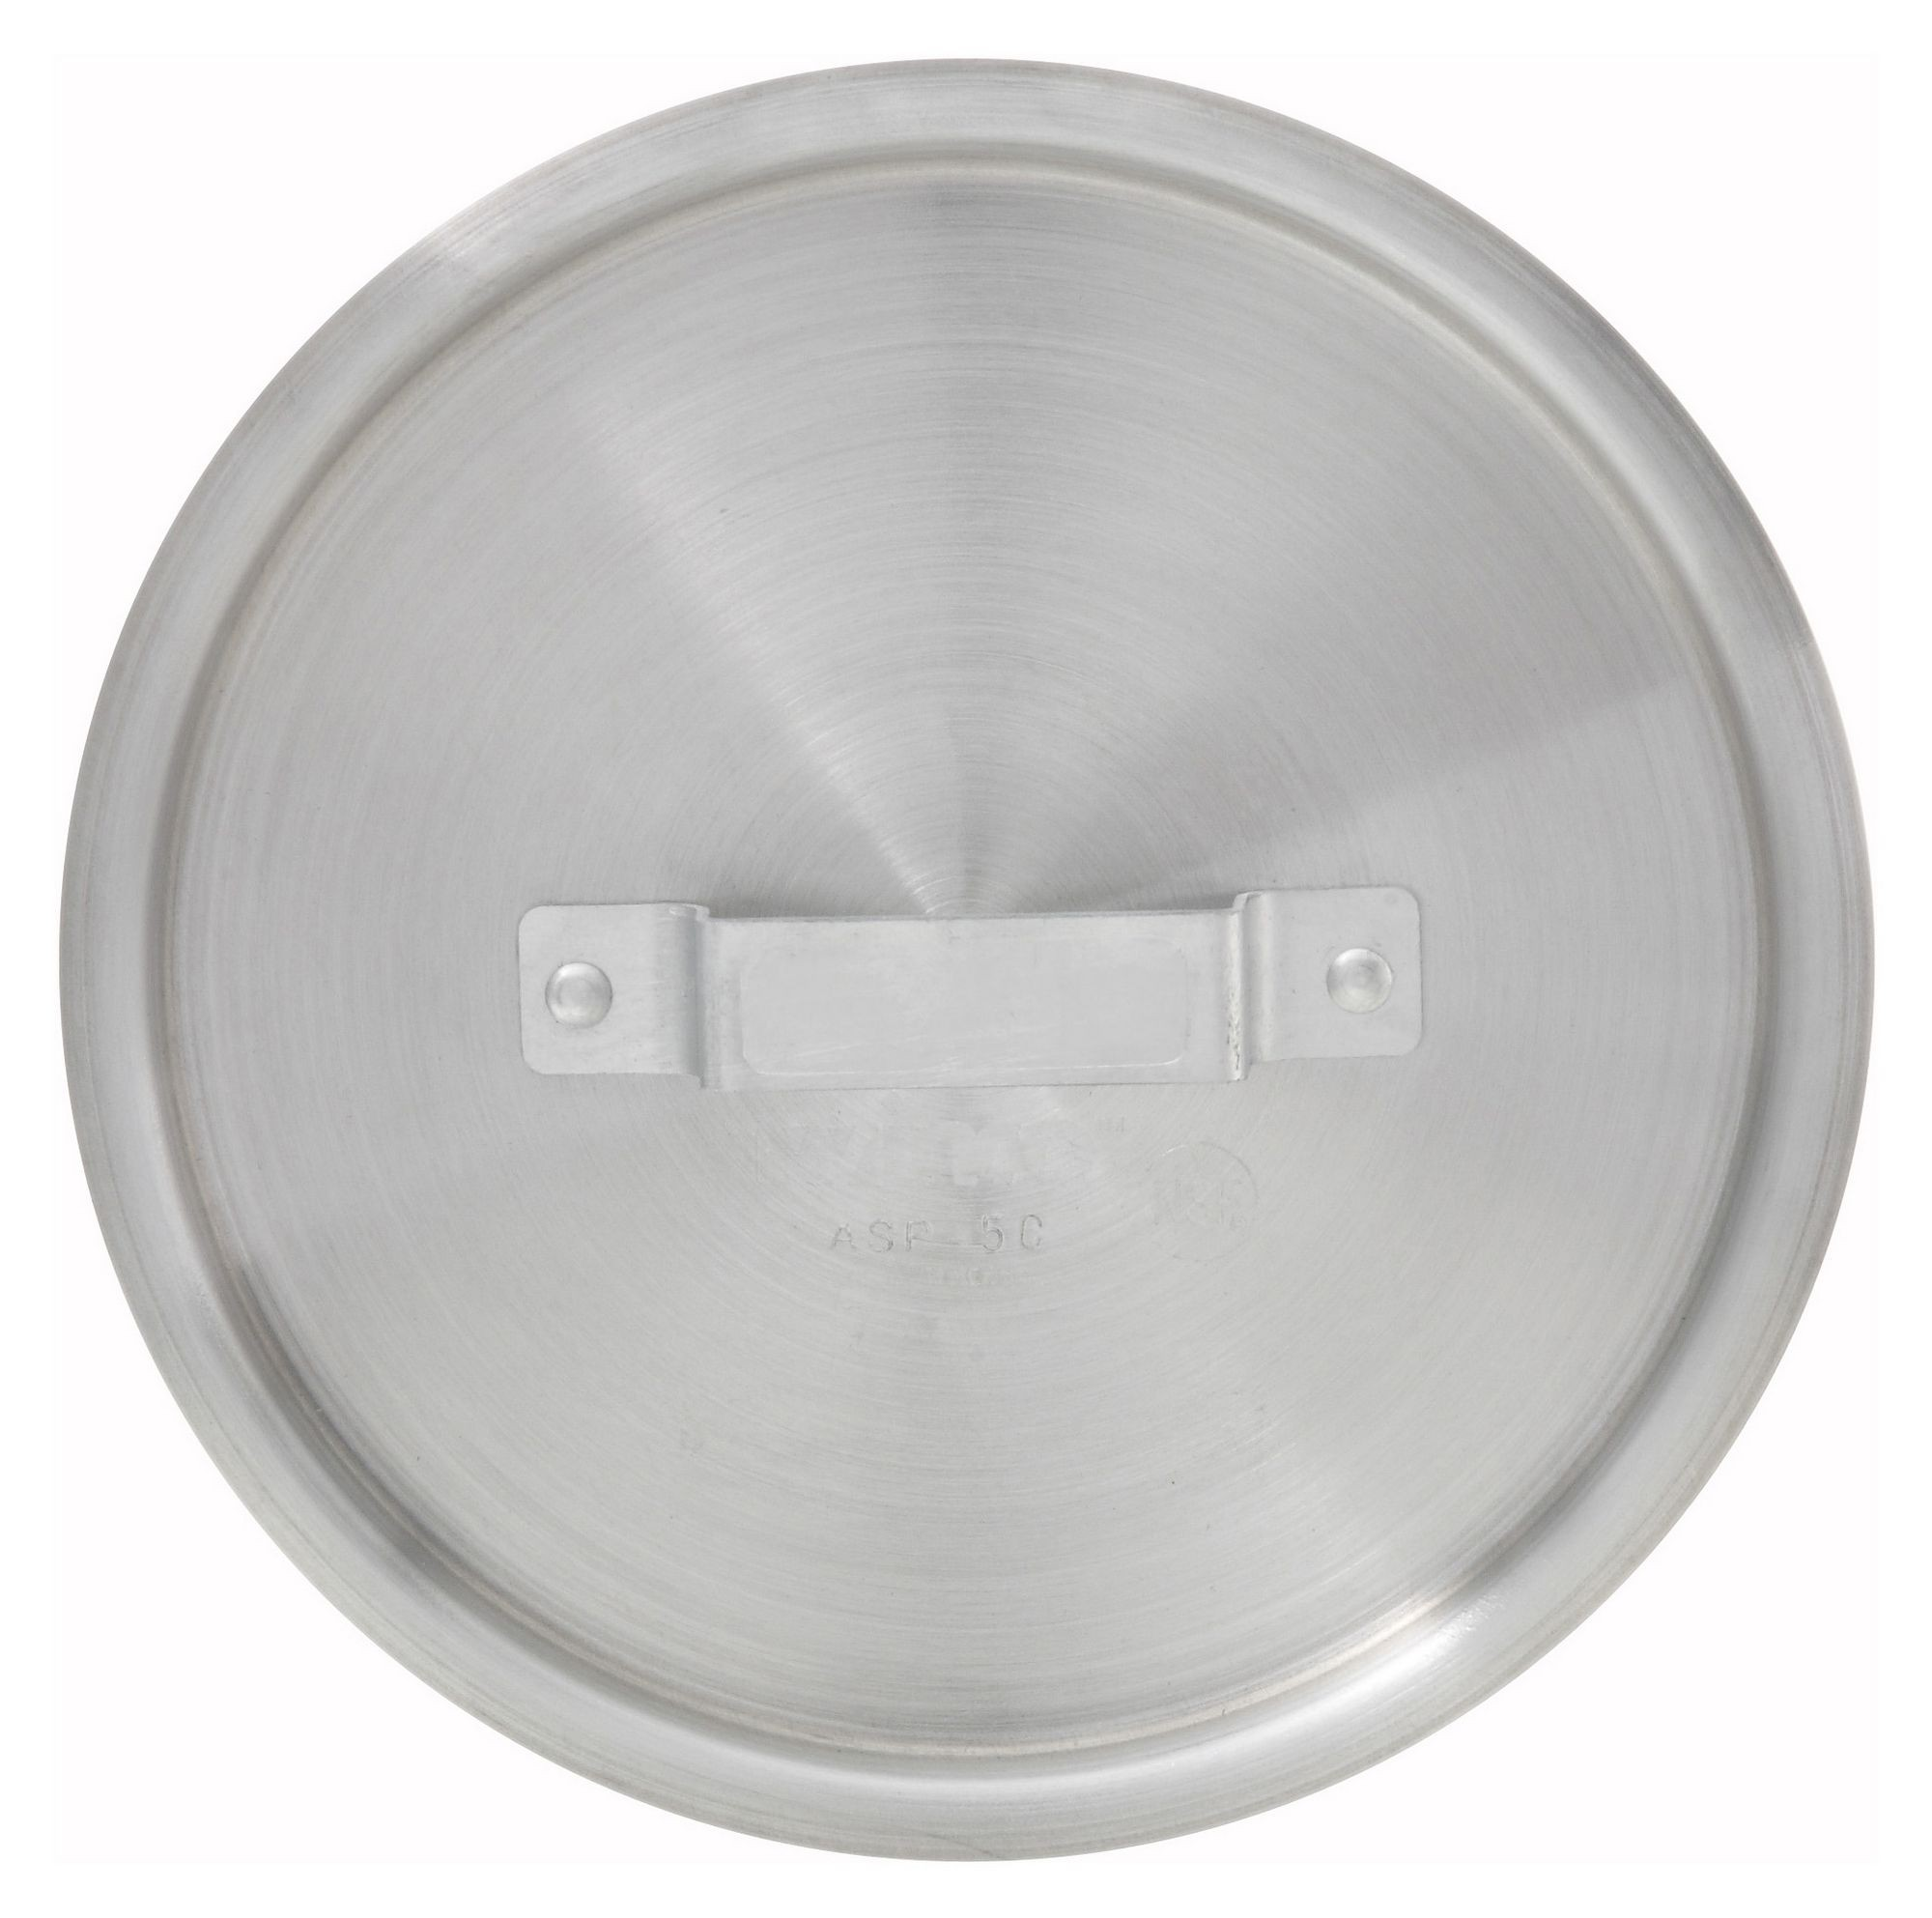 Winco ASP-3C Aluminum Cover for 3-3/4 Qt. Sauce Pan